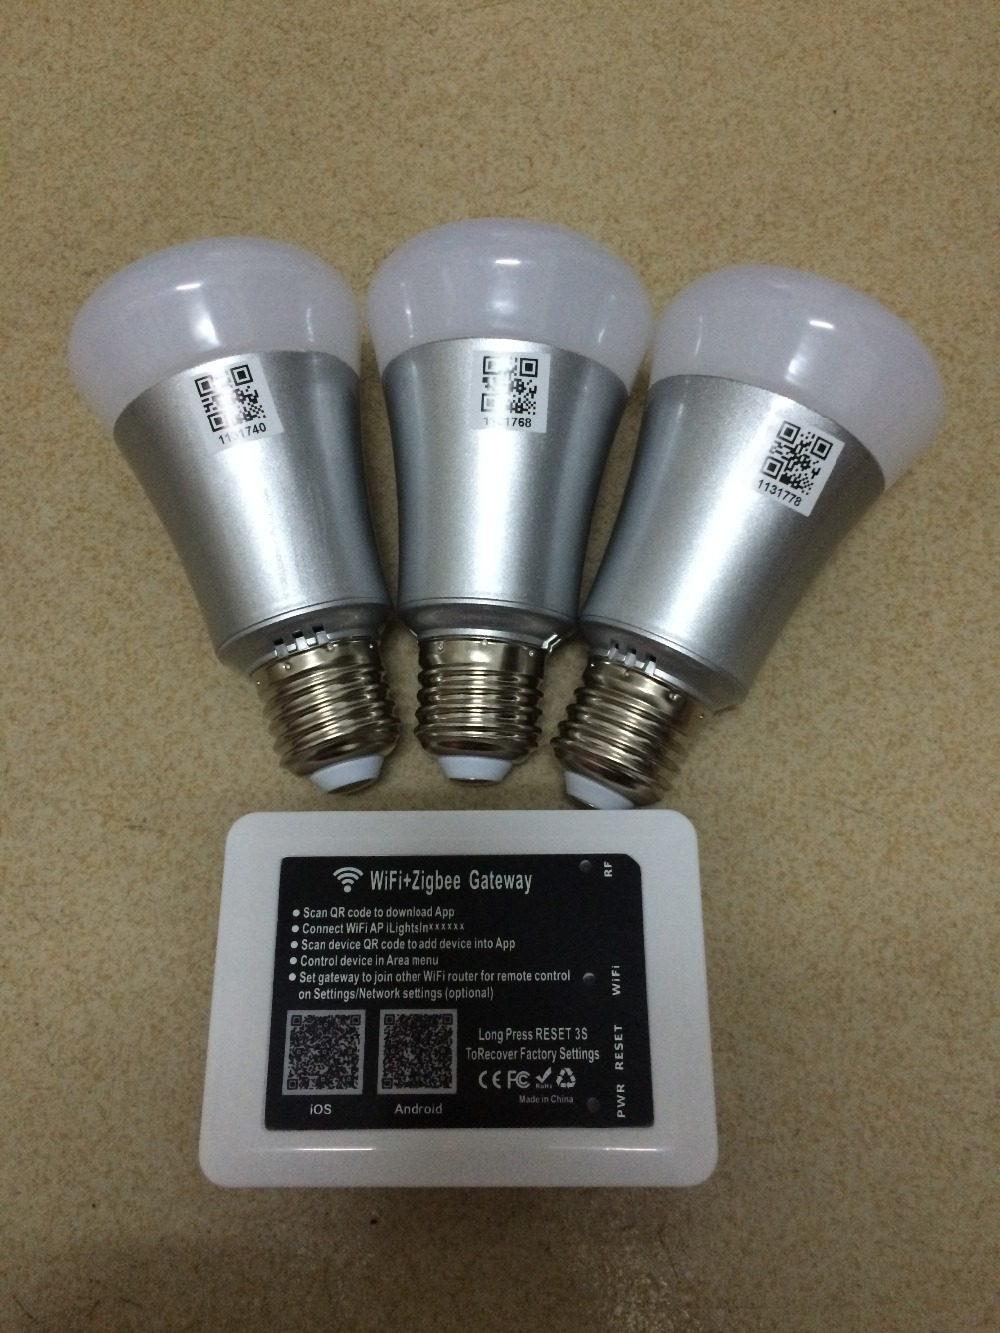 zigbee light link protocol e27 7w 650lm rgbw bulbs 4 value. Black Bedroom Furniture Sets. Home Design Ideas